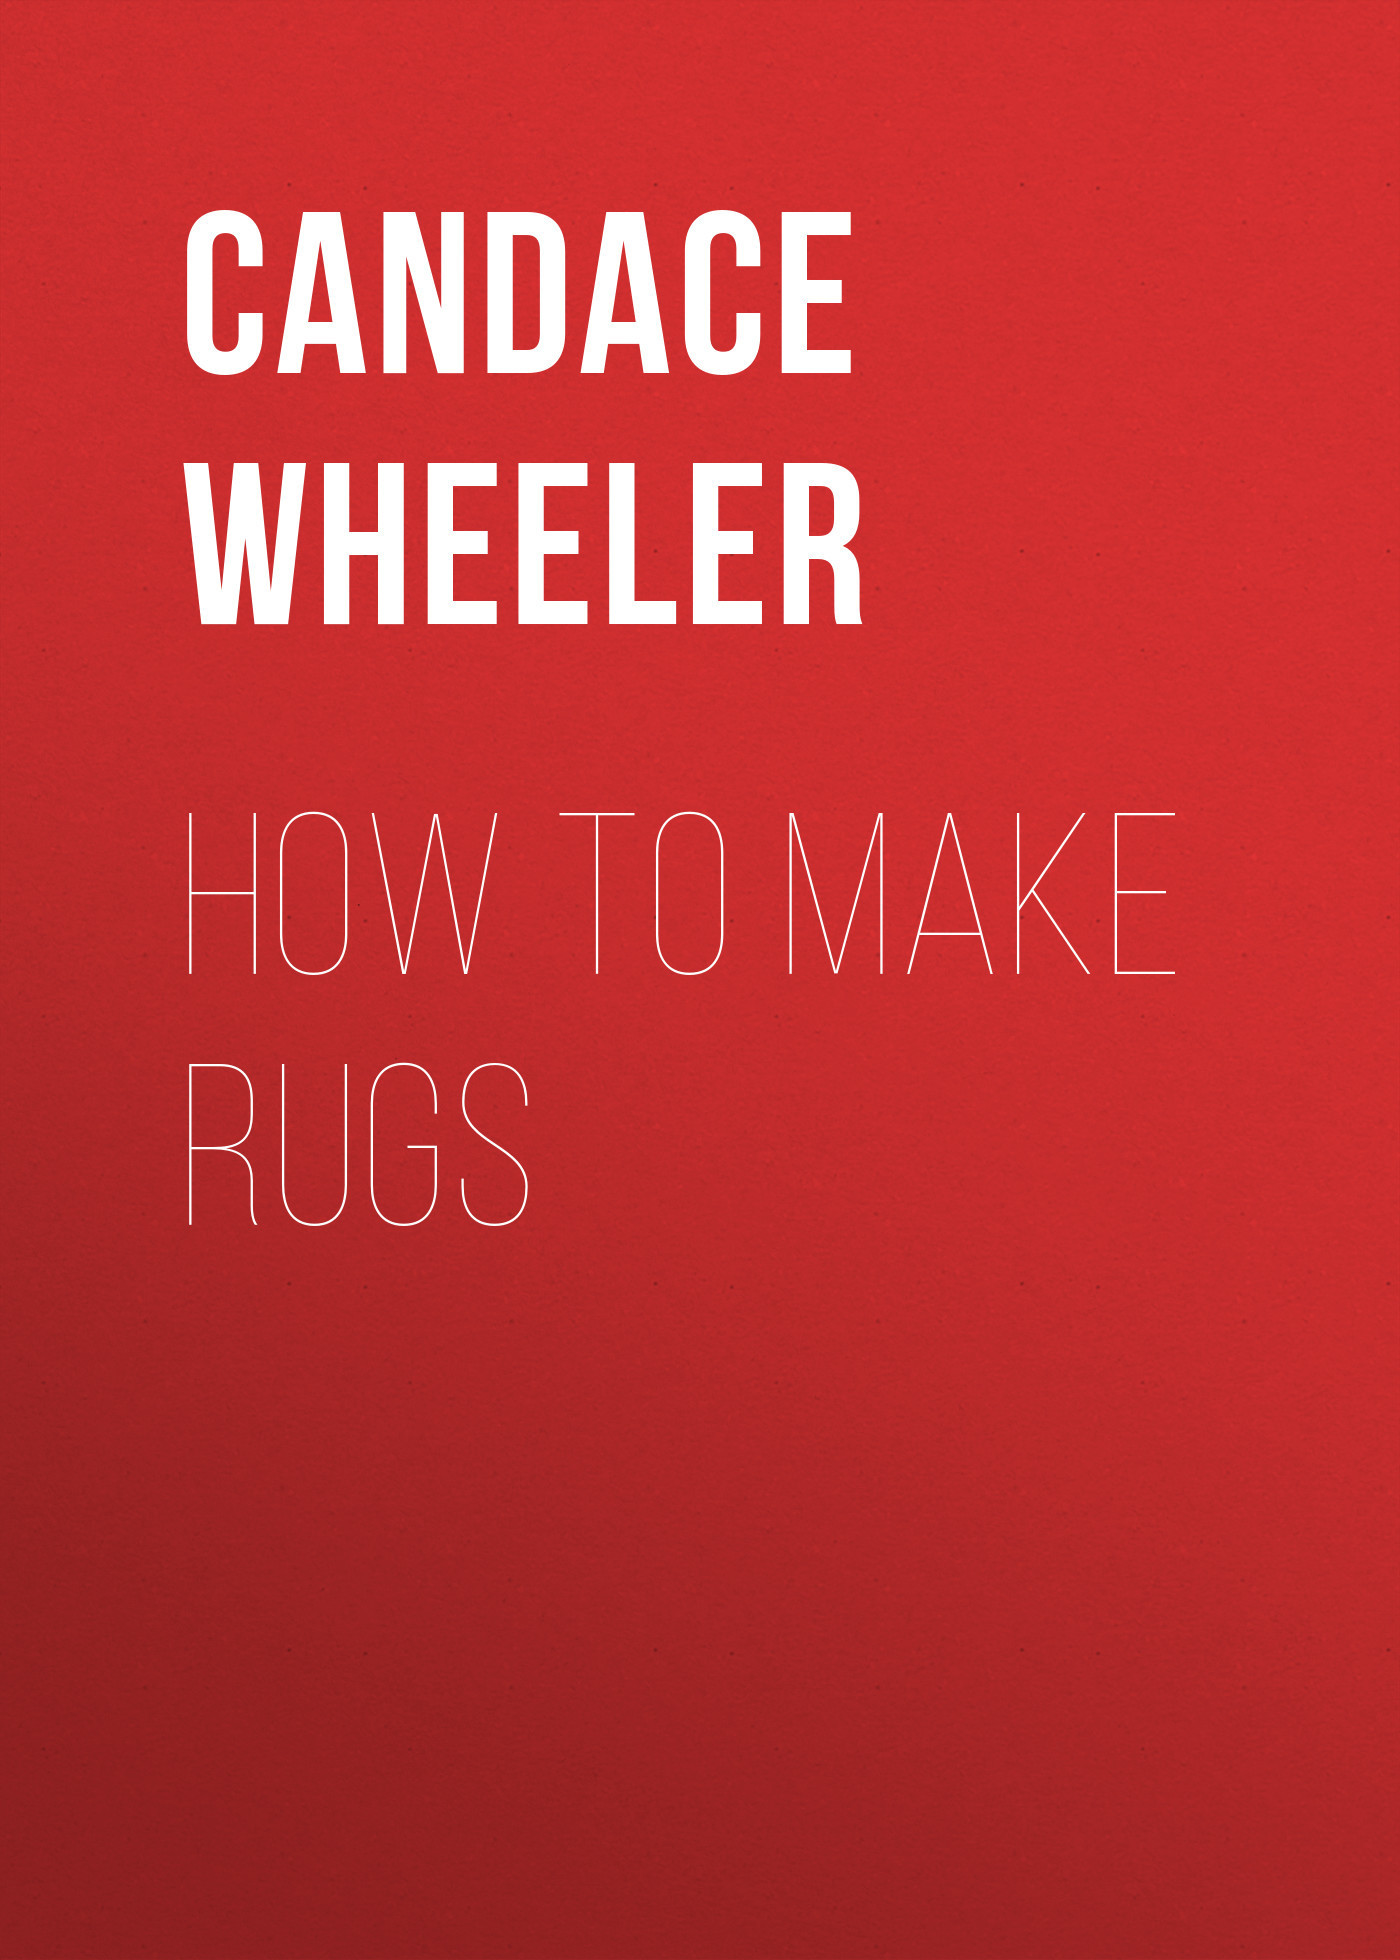 Candace Wheeler How to make rugs